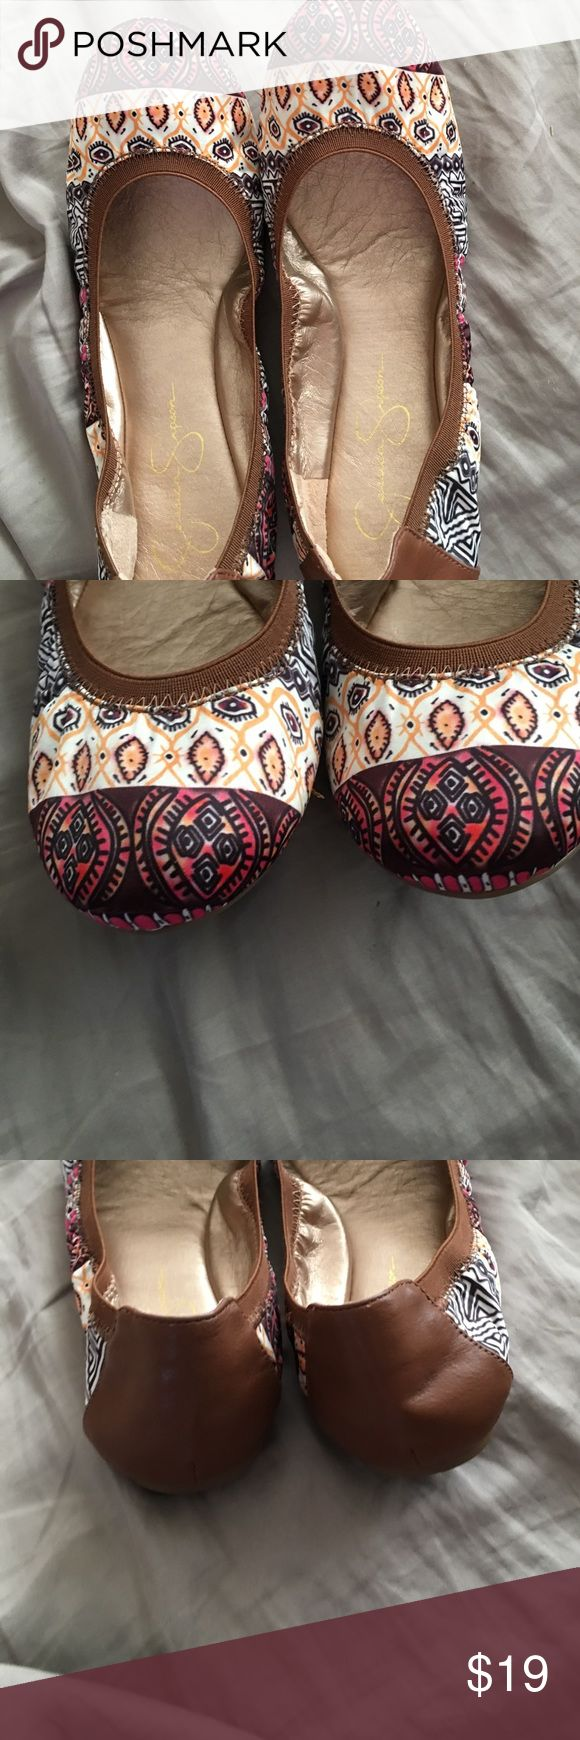 I LOVE THESE SHOES! Size 8.5B  Jessica Simpson NO OFFERS PLEASE THIS IS MY FINAL PRICE✨Jessica Simpson flats. Worn probably 2 or 3 times but after recent back surgery have to have shoes with support. Grab them while you can. They will be your go to this summer Jessica Simpson Shoes Flats & Loafers